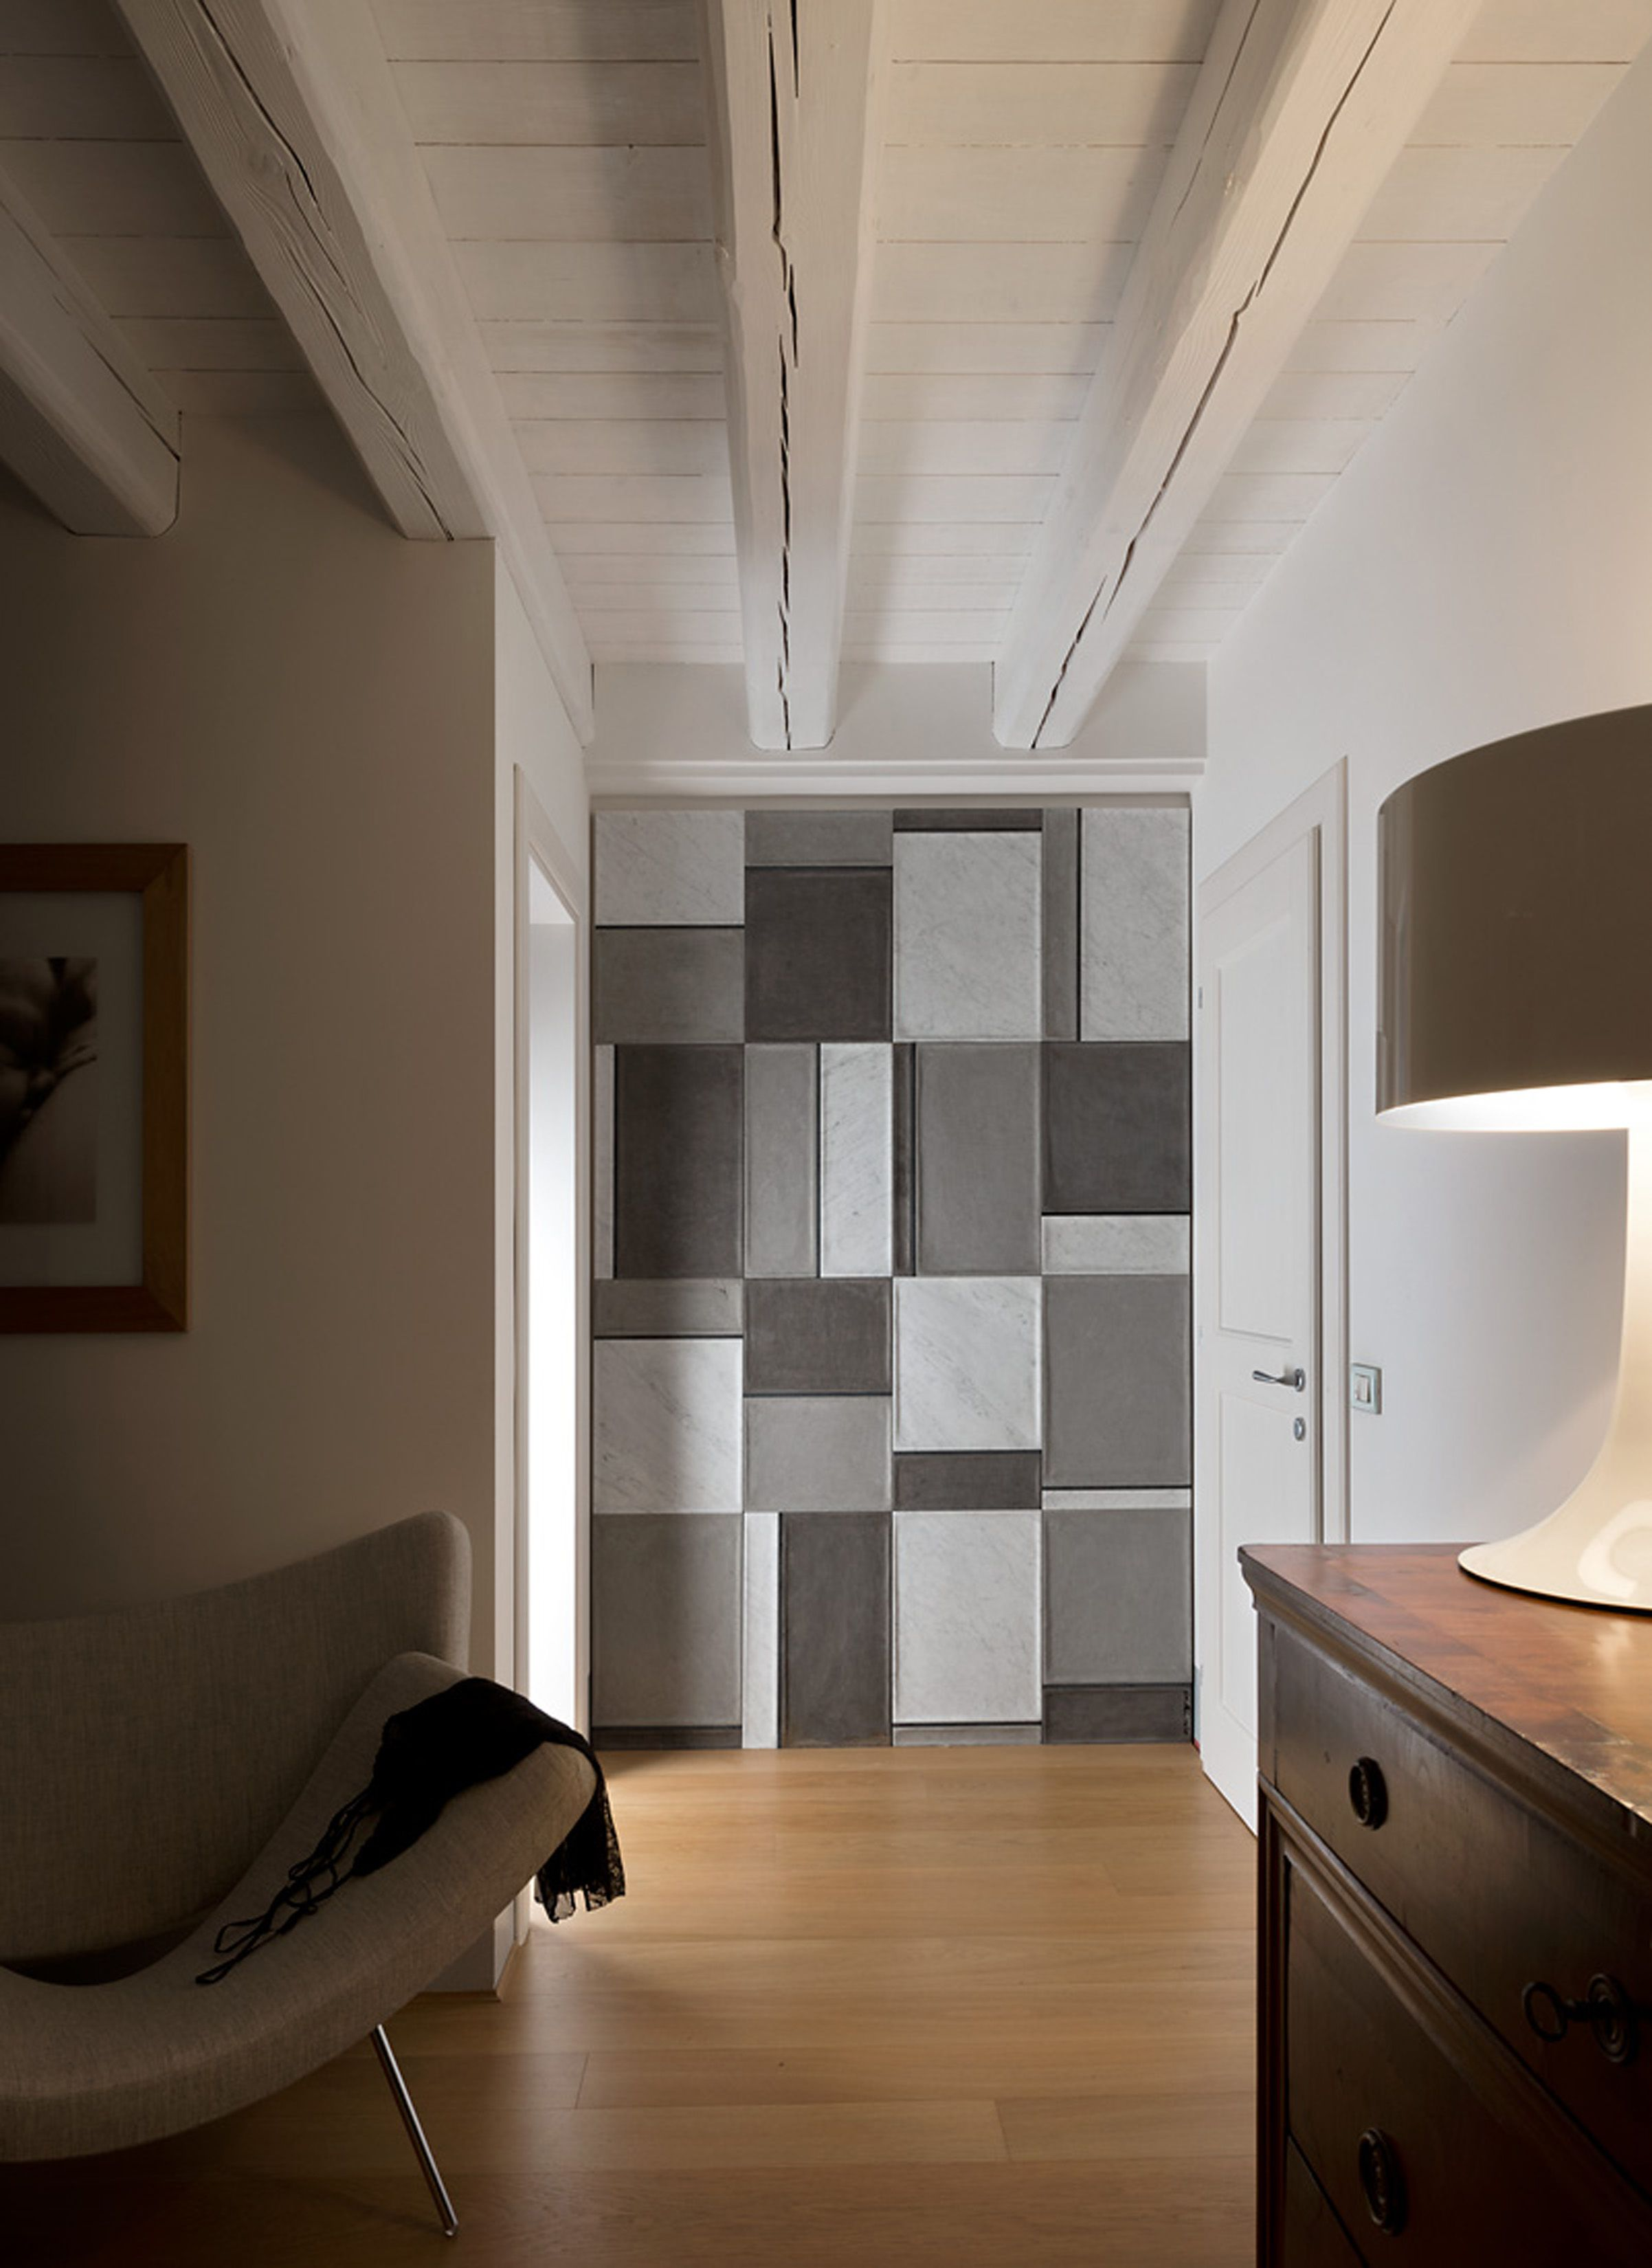 Housing interior surface bedroom wall by giovanni barbieri also rh pinterest